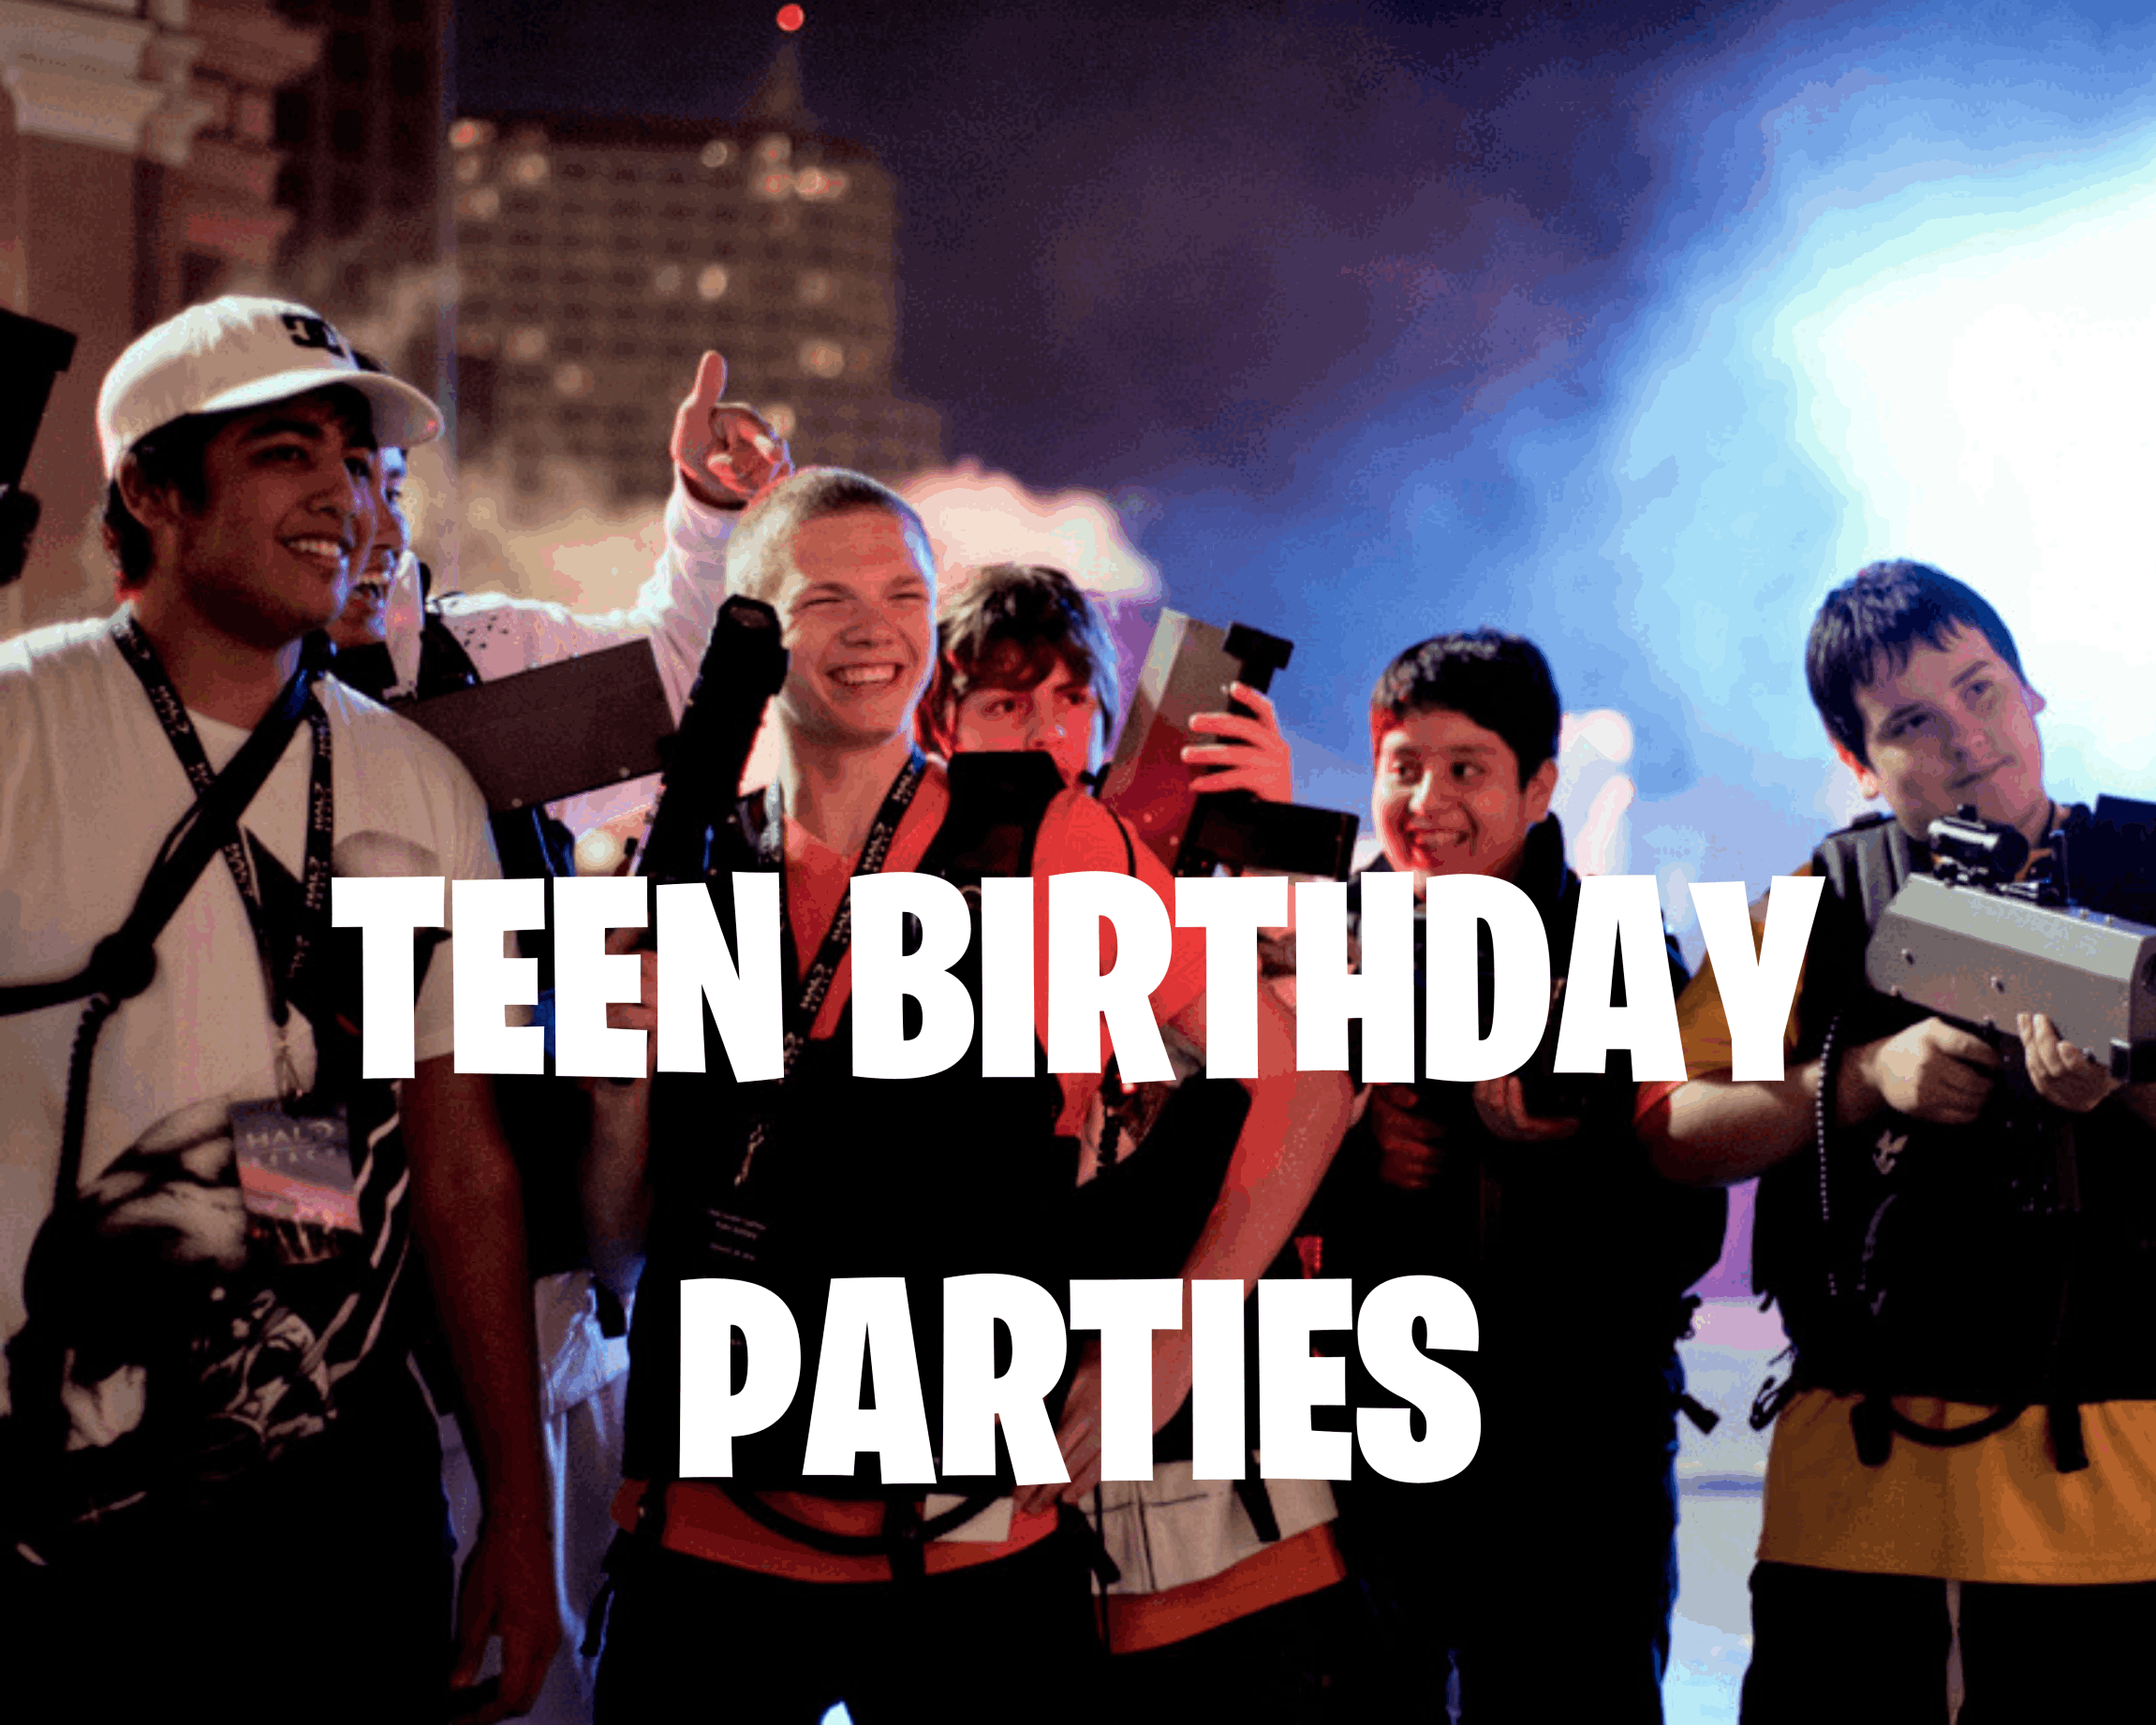 Teen birthday parties link